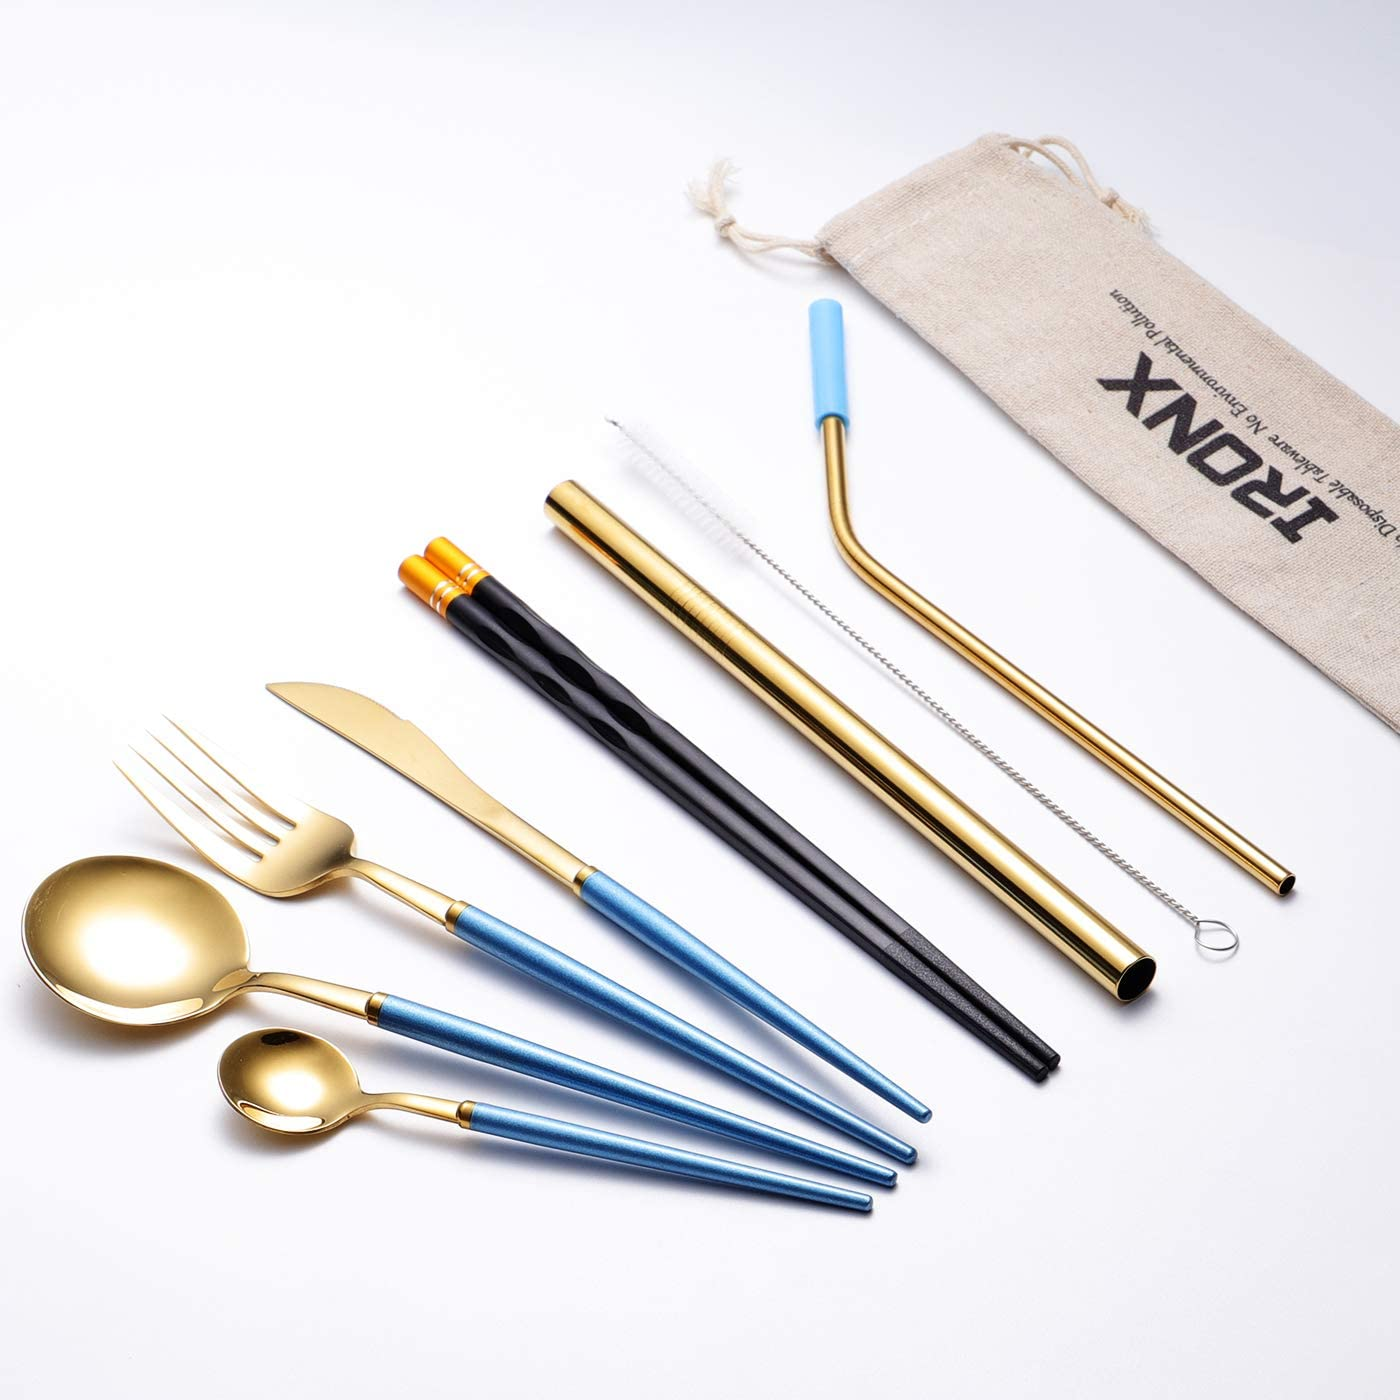 Travel Camping Cutlery Set, 18/10 Stainless Steel Utensil, Light Weight, Includes Knife/Fork/Spoon/Teaspoon/12mm Straw/6mm Straw/Tip/Chopsticks/Bag for Boys Men by IRONX(10p Travel Blue)